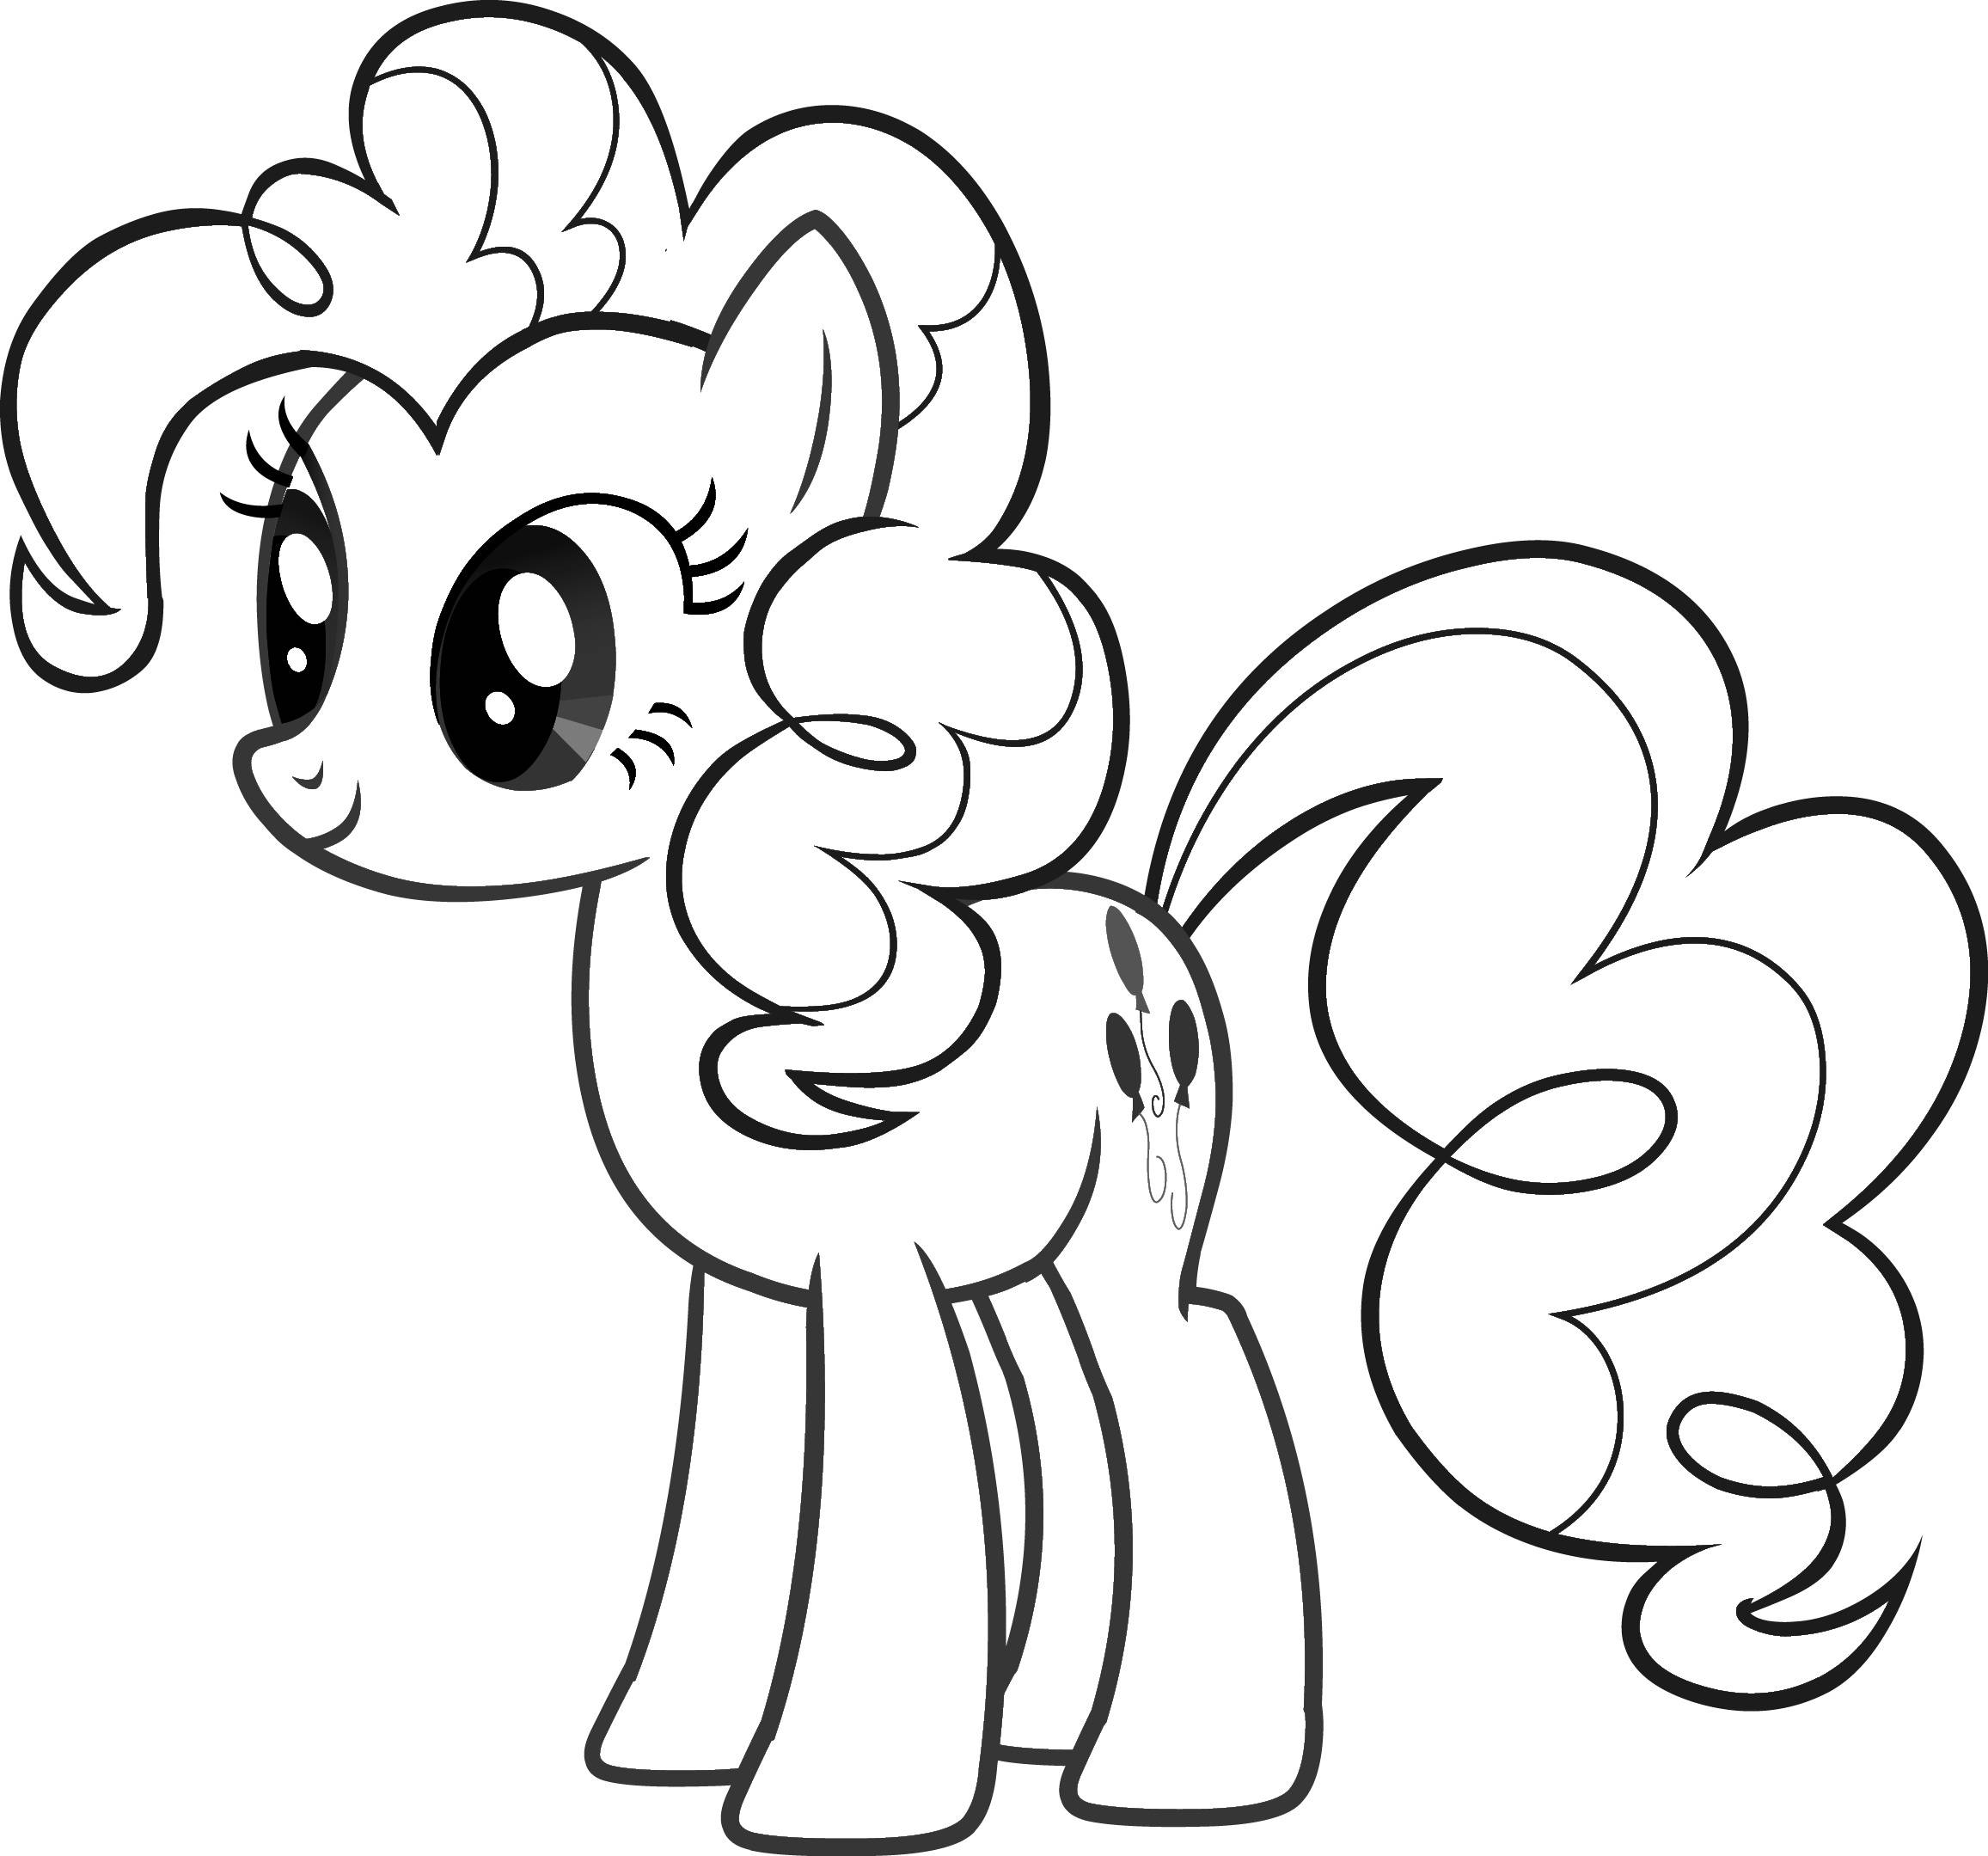 my little pony coloring pages - Colouring Pages To Print